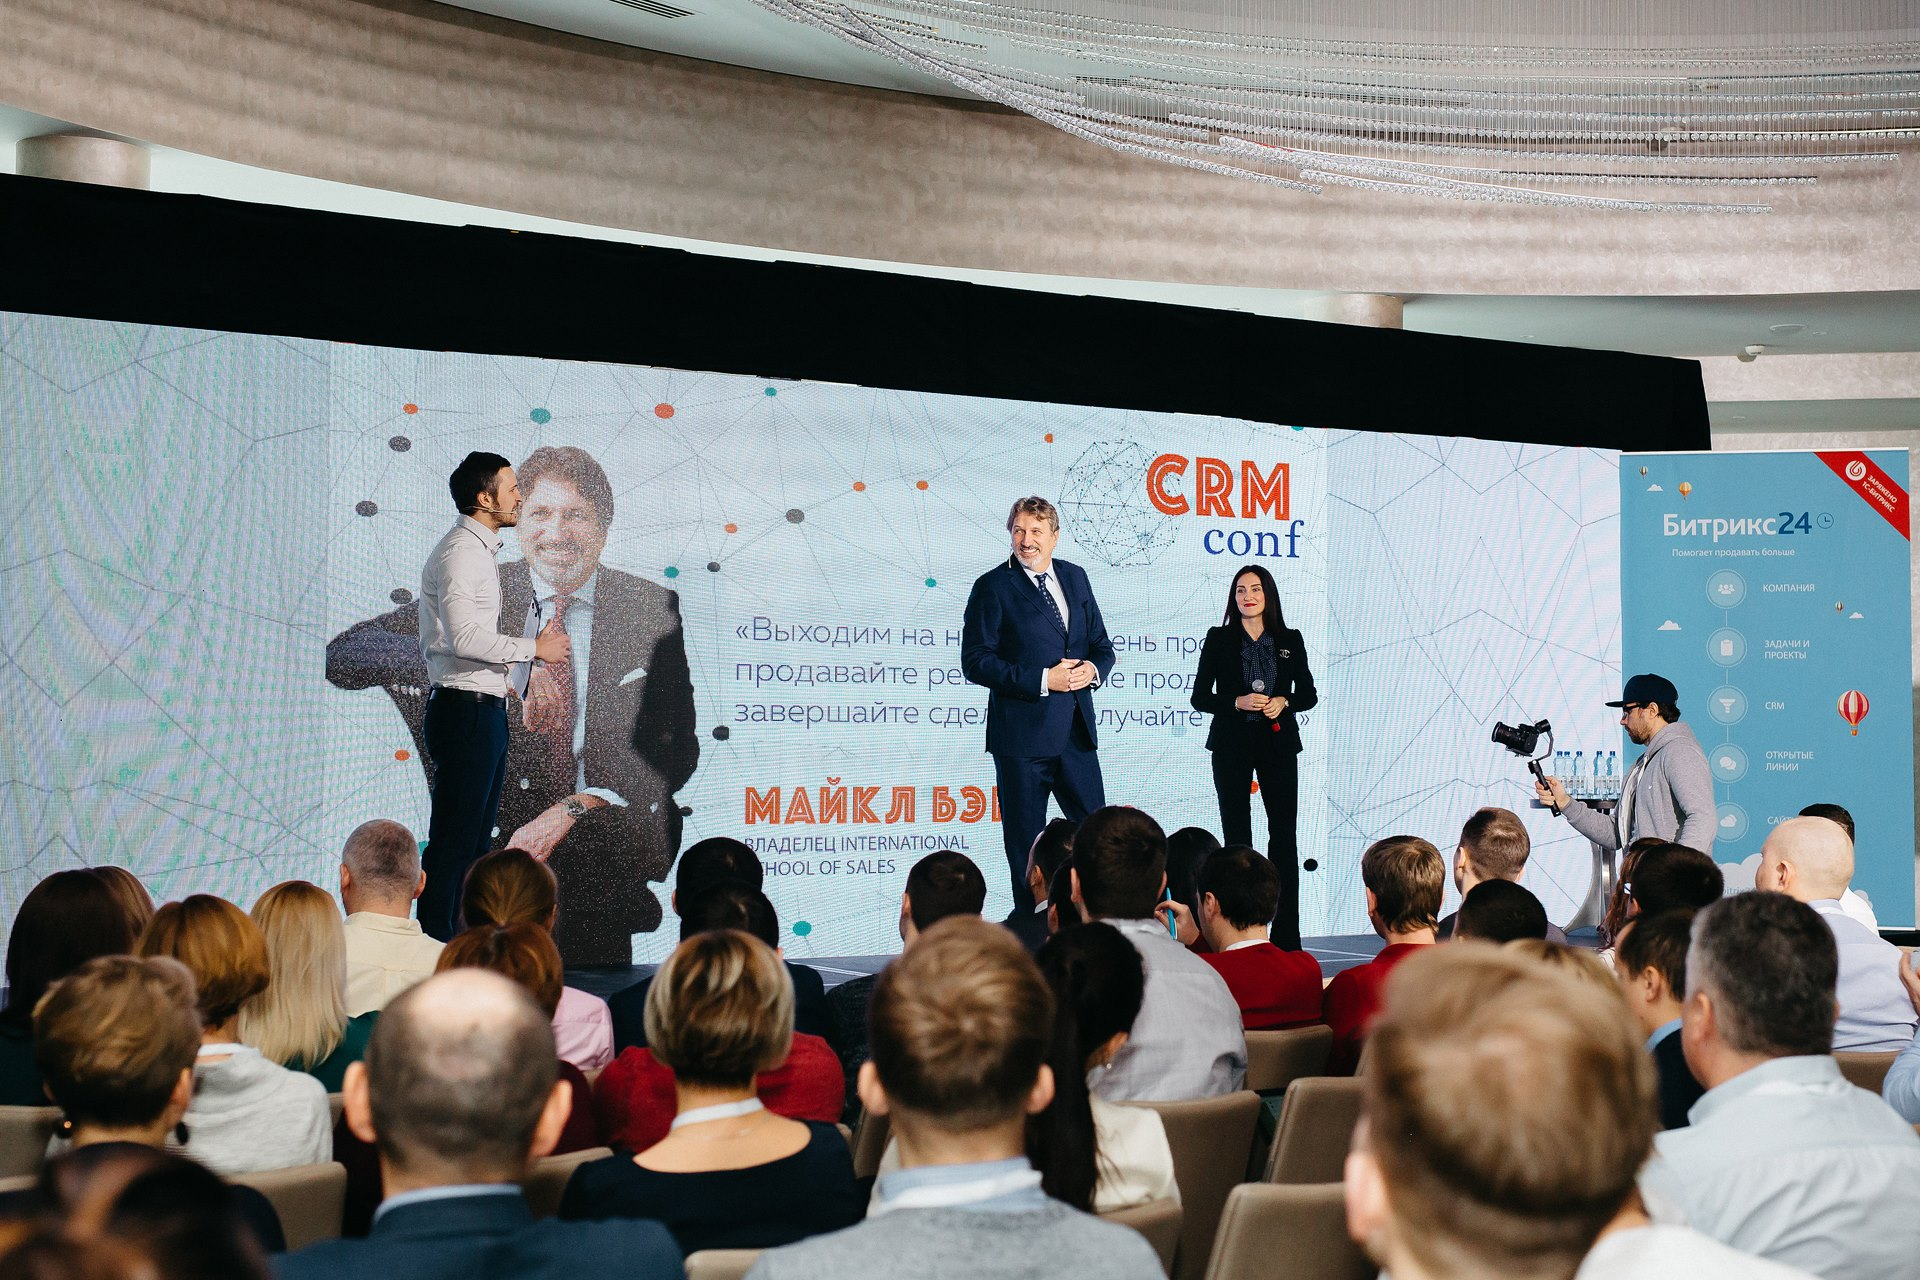 CRM Conference 2018